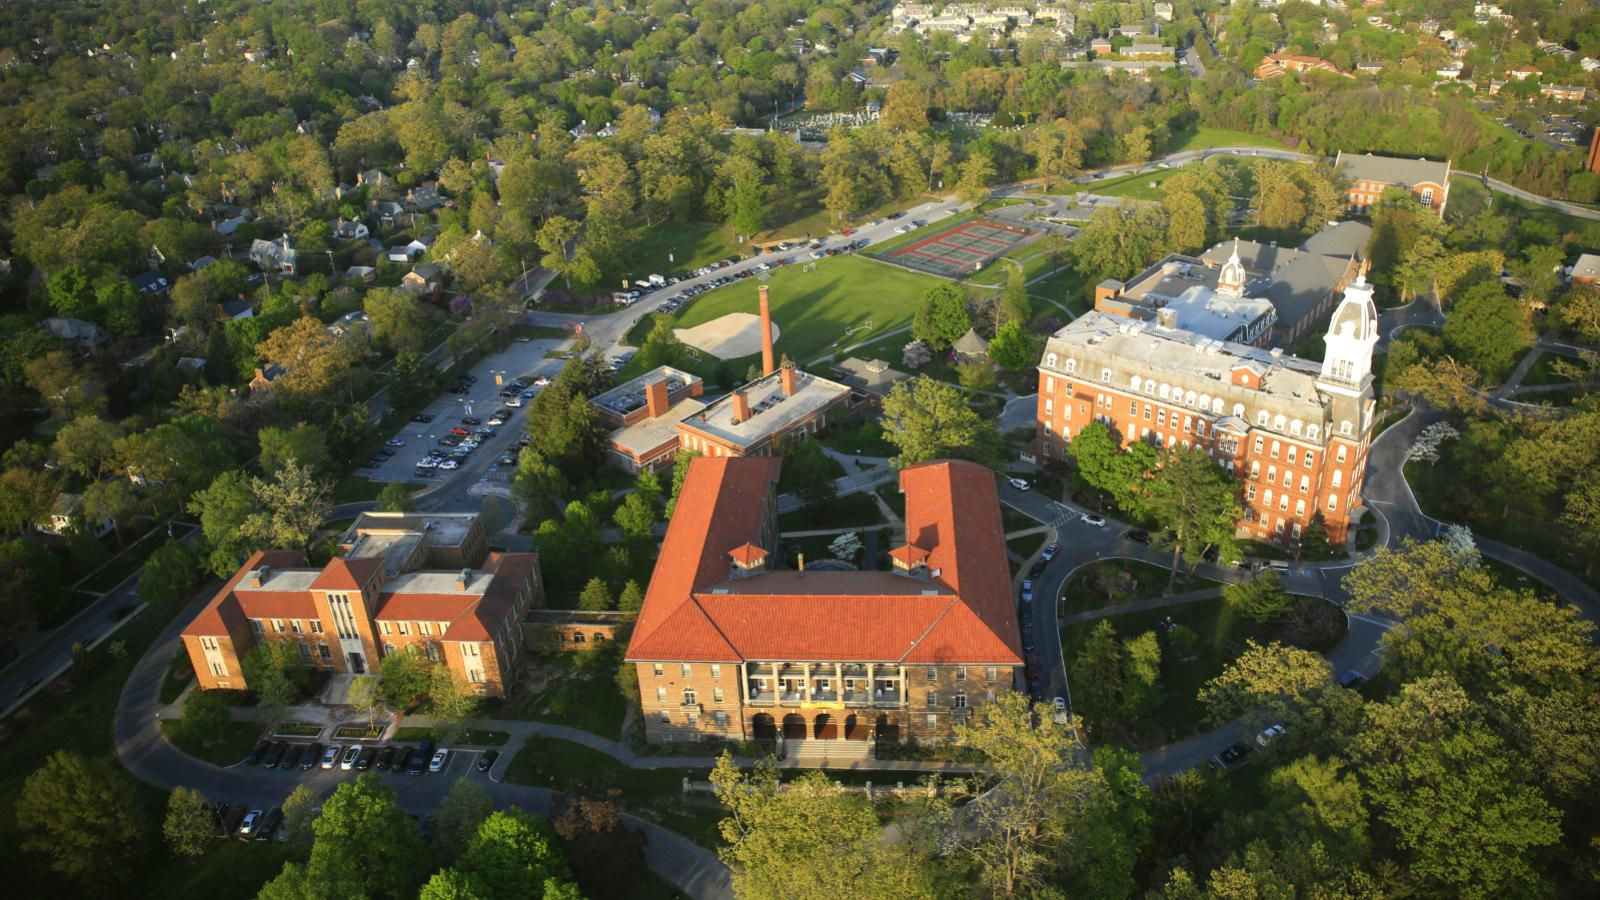 Notre Dame University of Maryland Overhead View